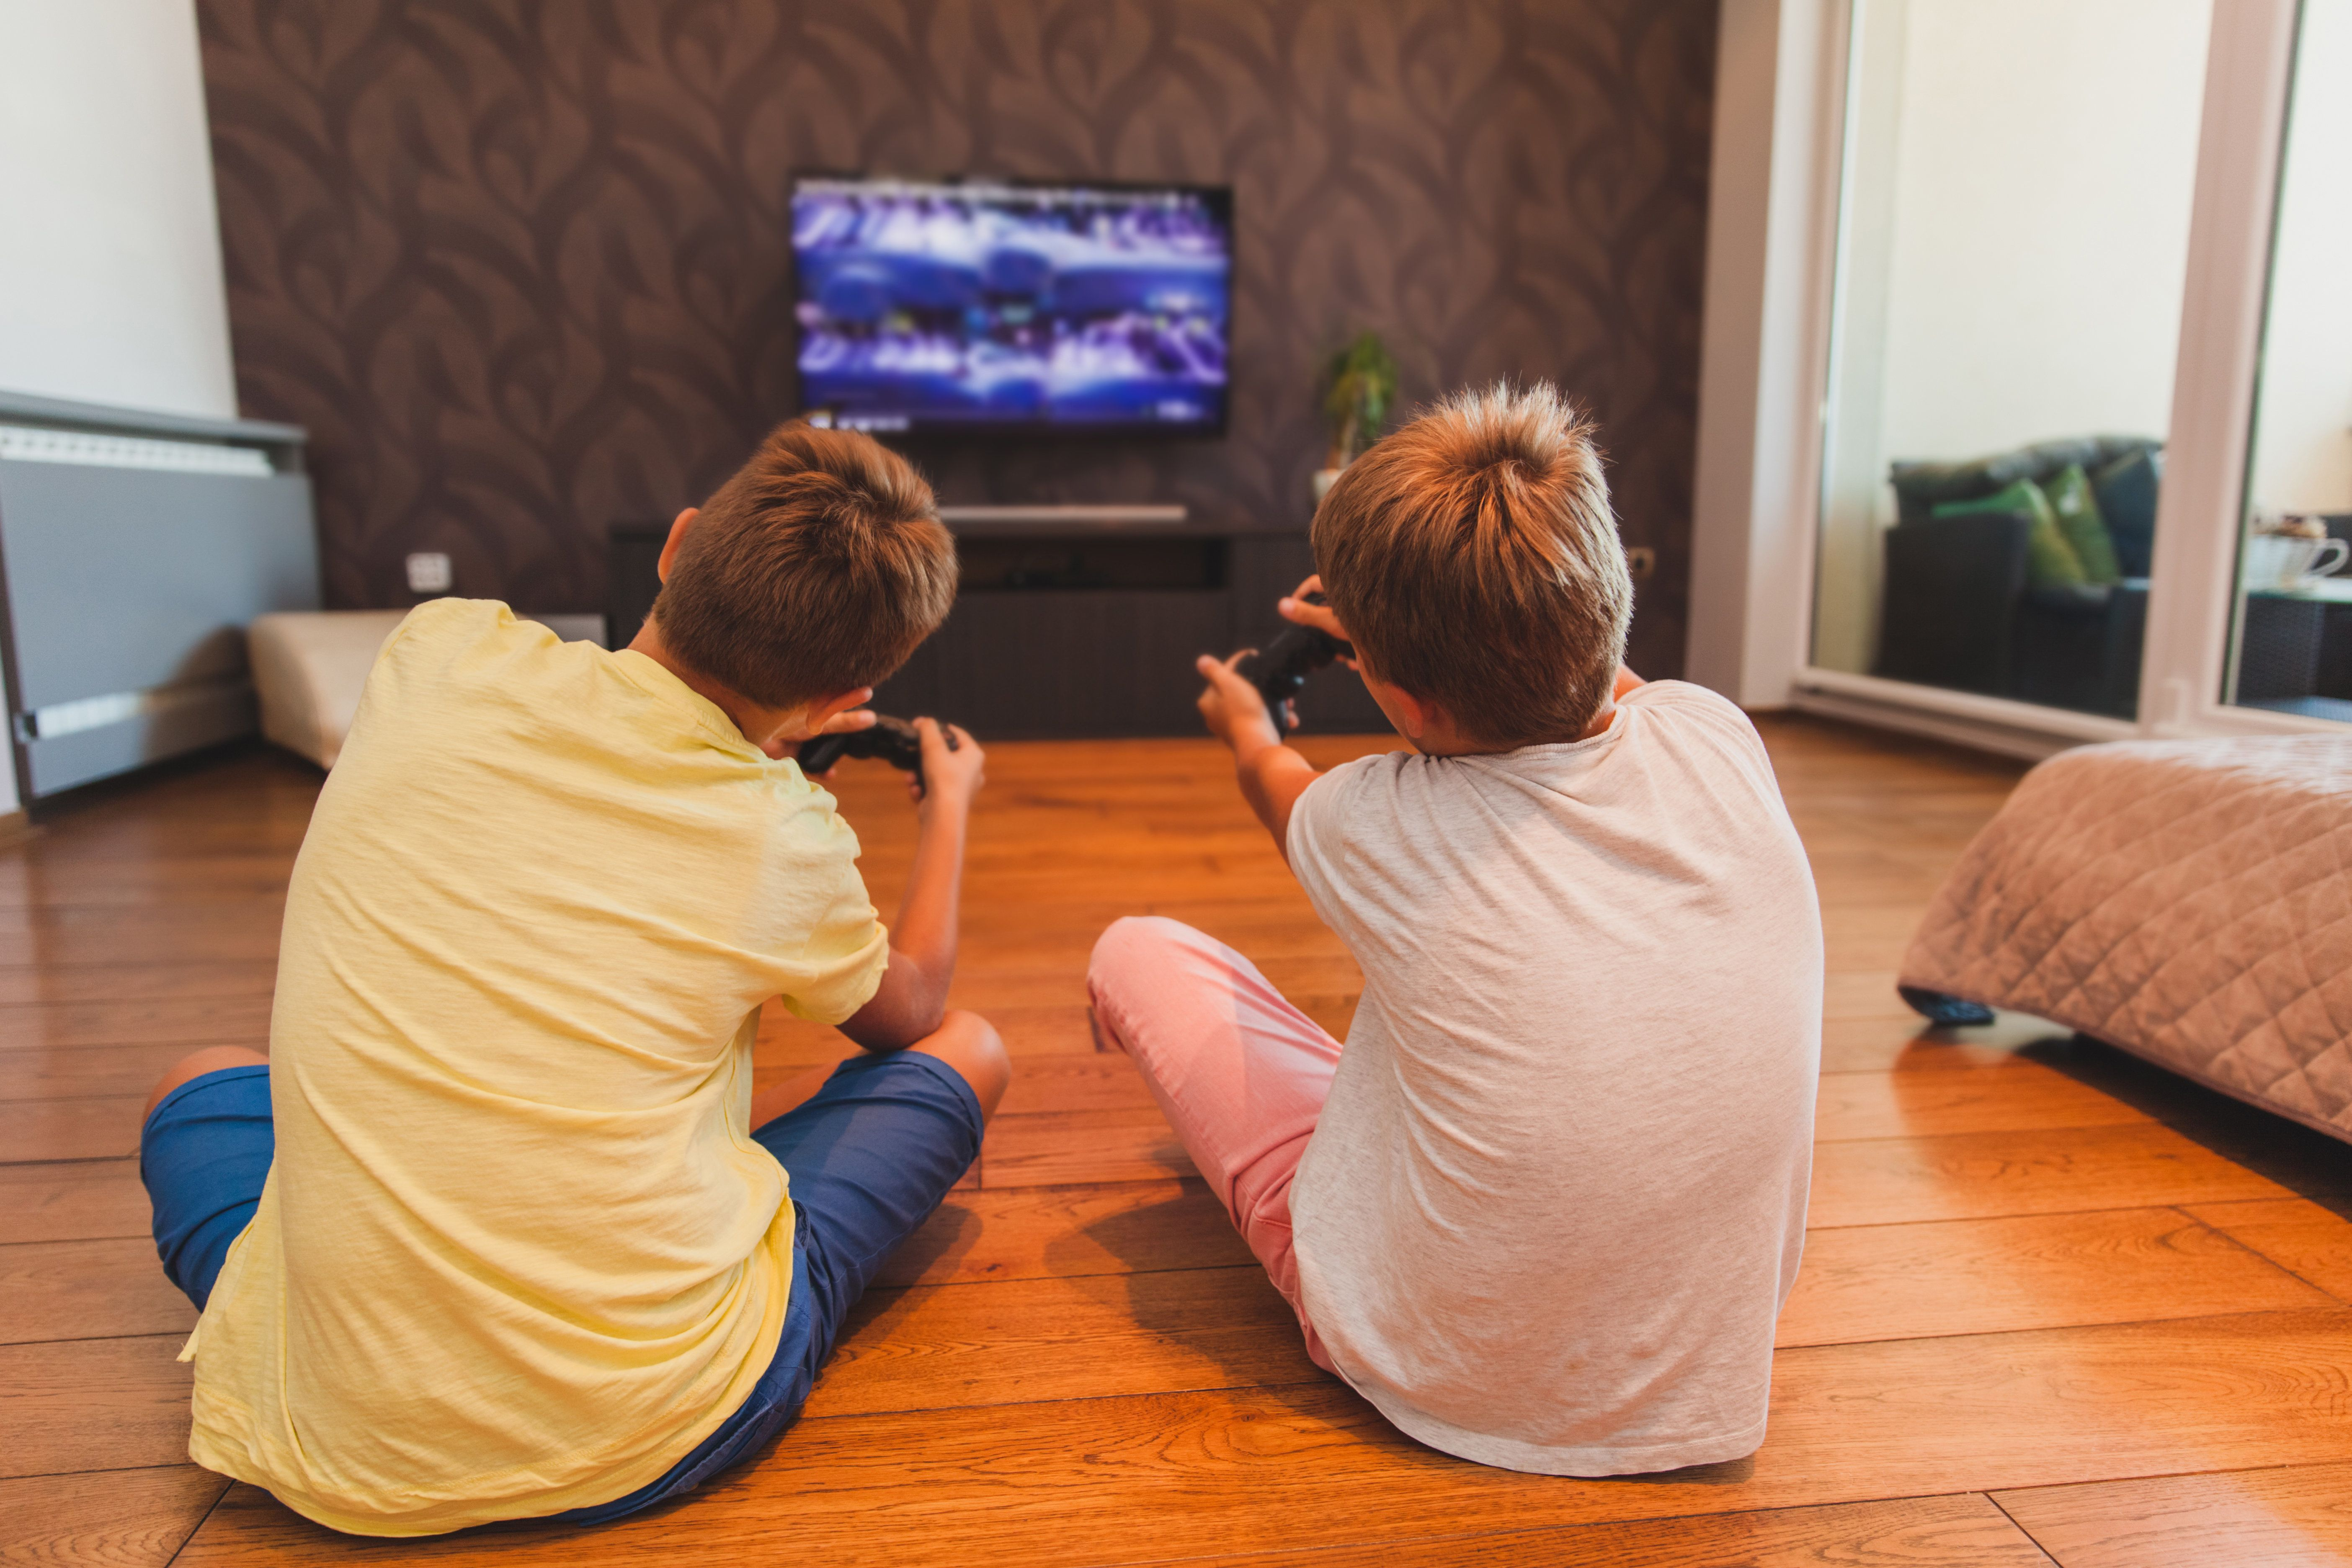 Two Boys Playing Games sitting on the floor in front of TV